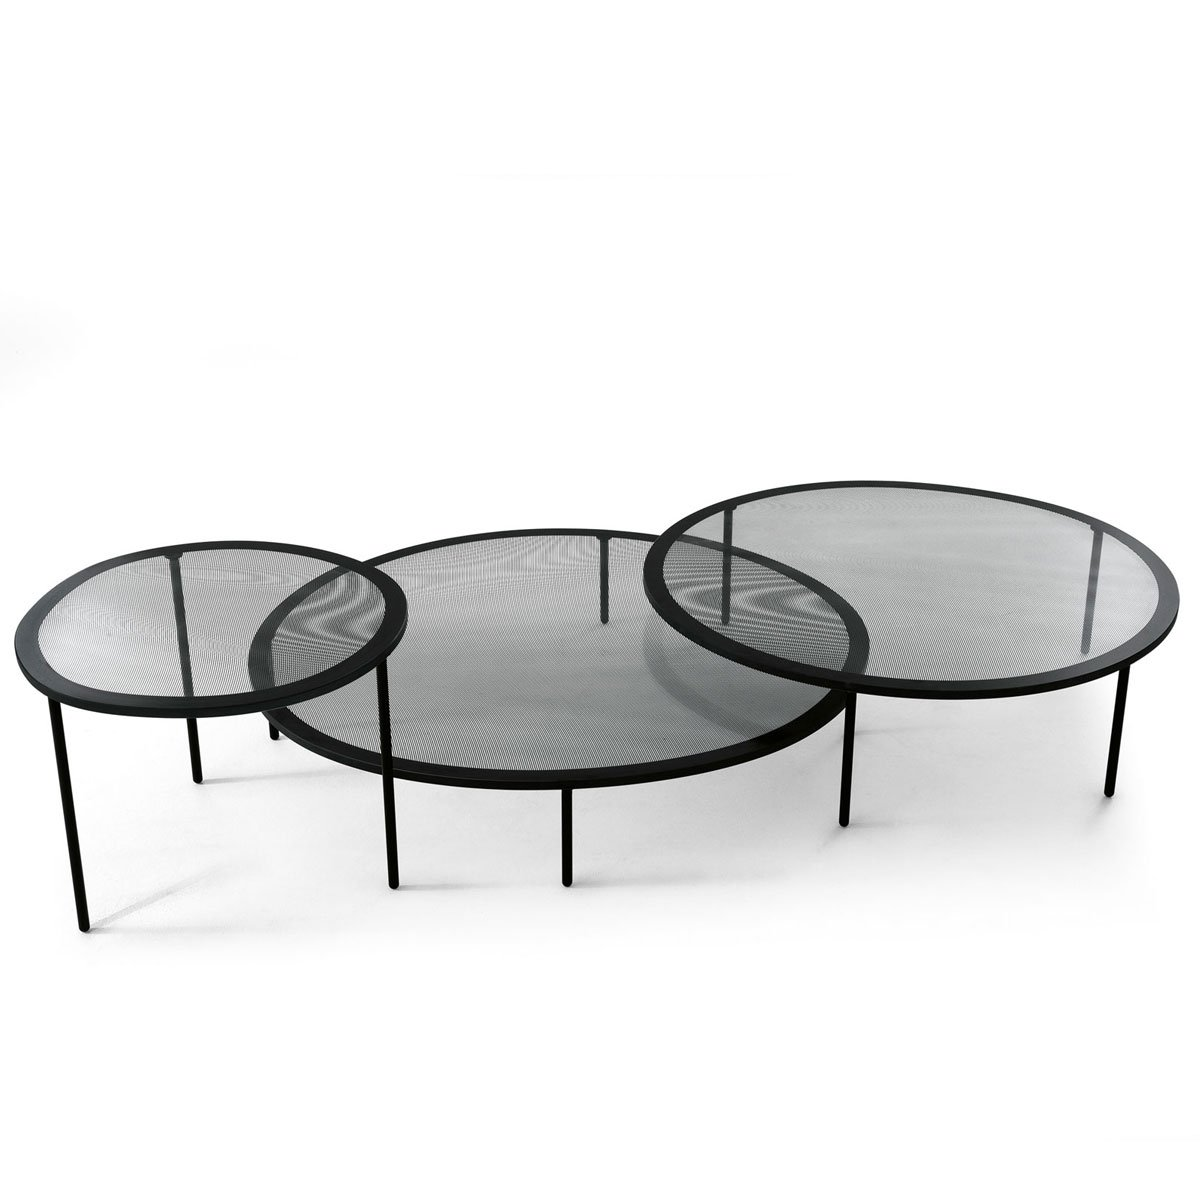 Taffy glass and metal coffee table by gallotti radice klarity glass furniture Metal and glass coffee table